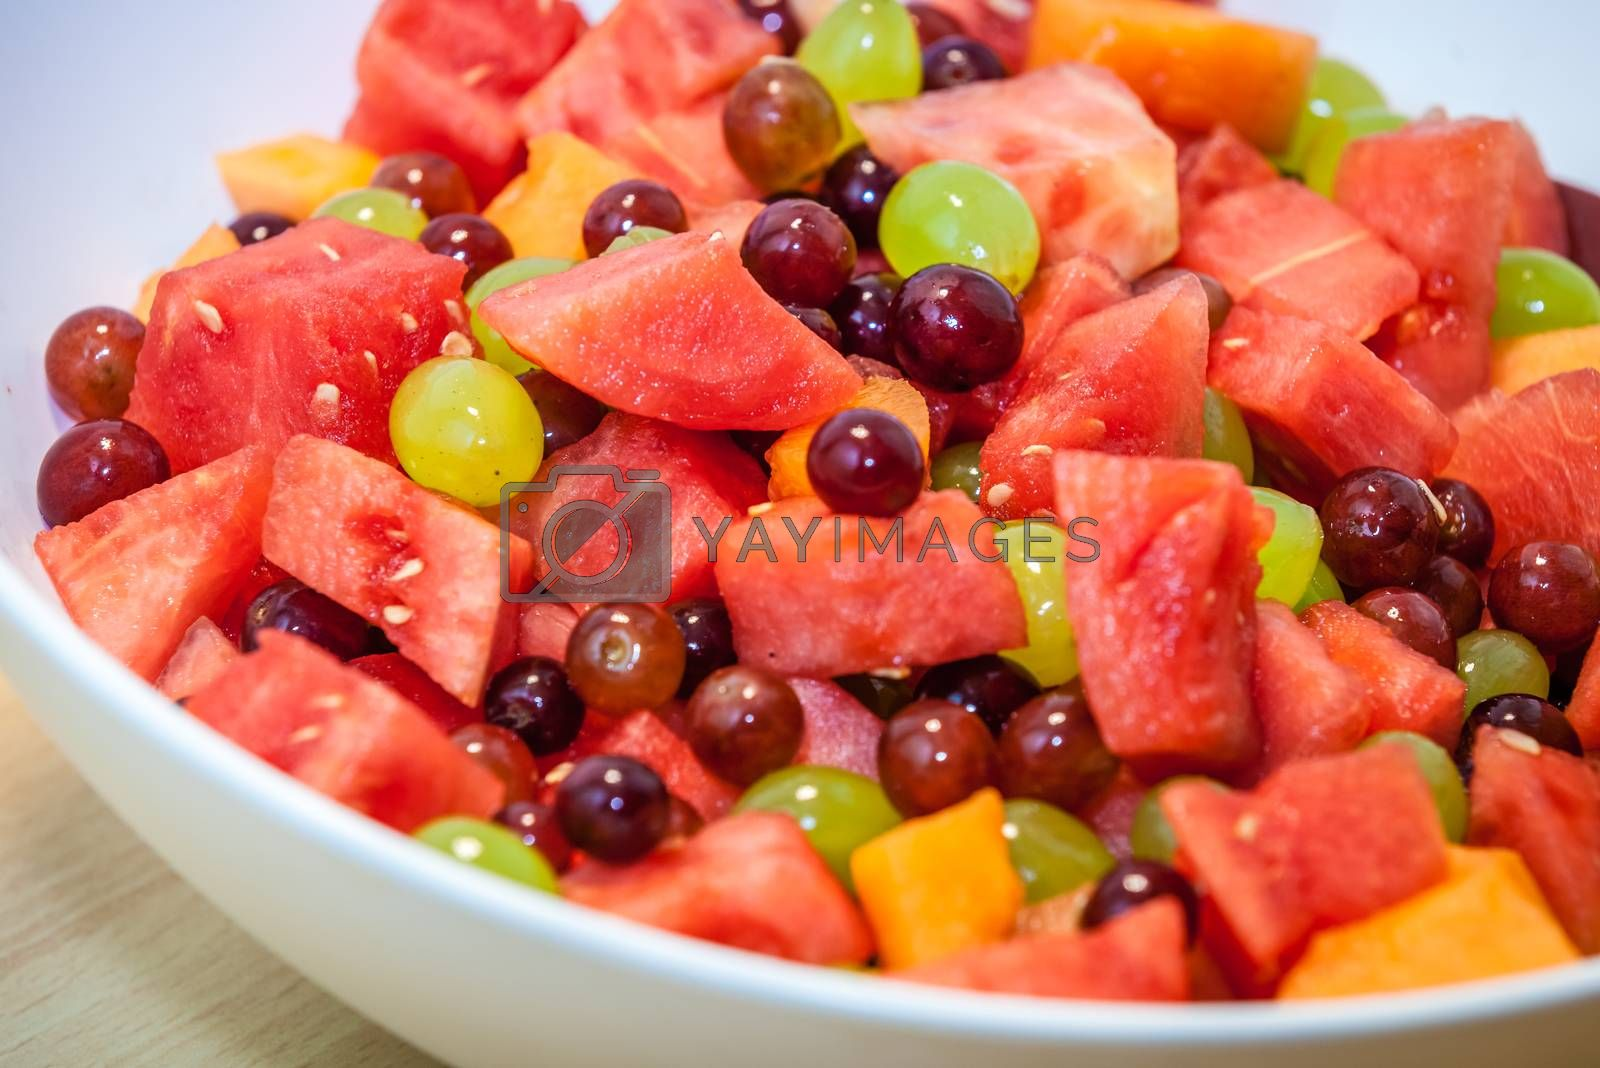 Close up of a large bowl of fresh fruits on a table served for breakfast